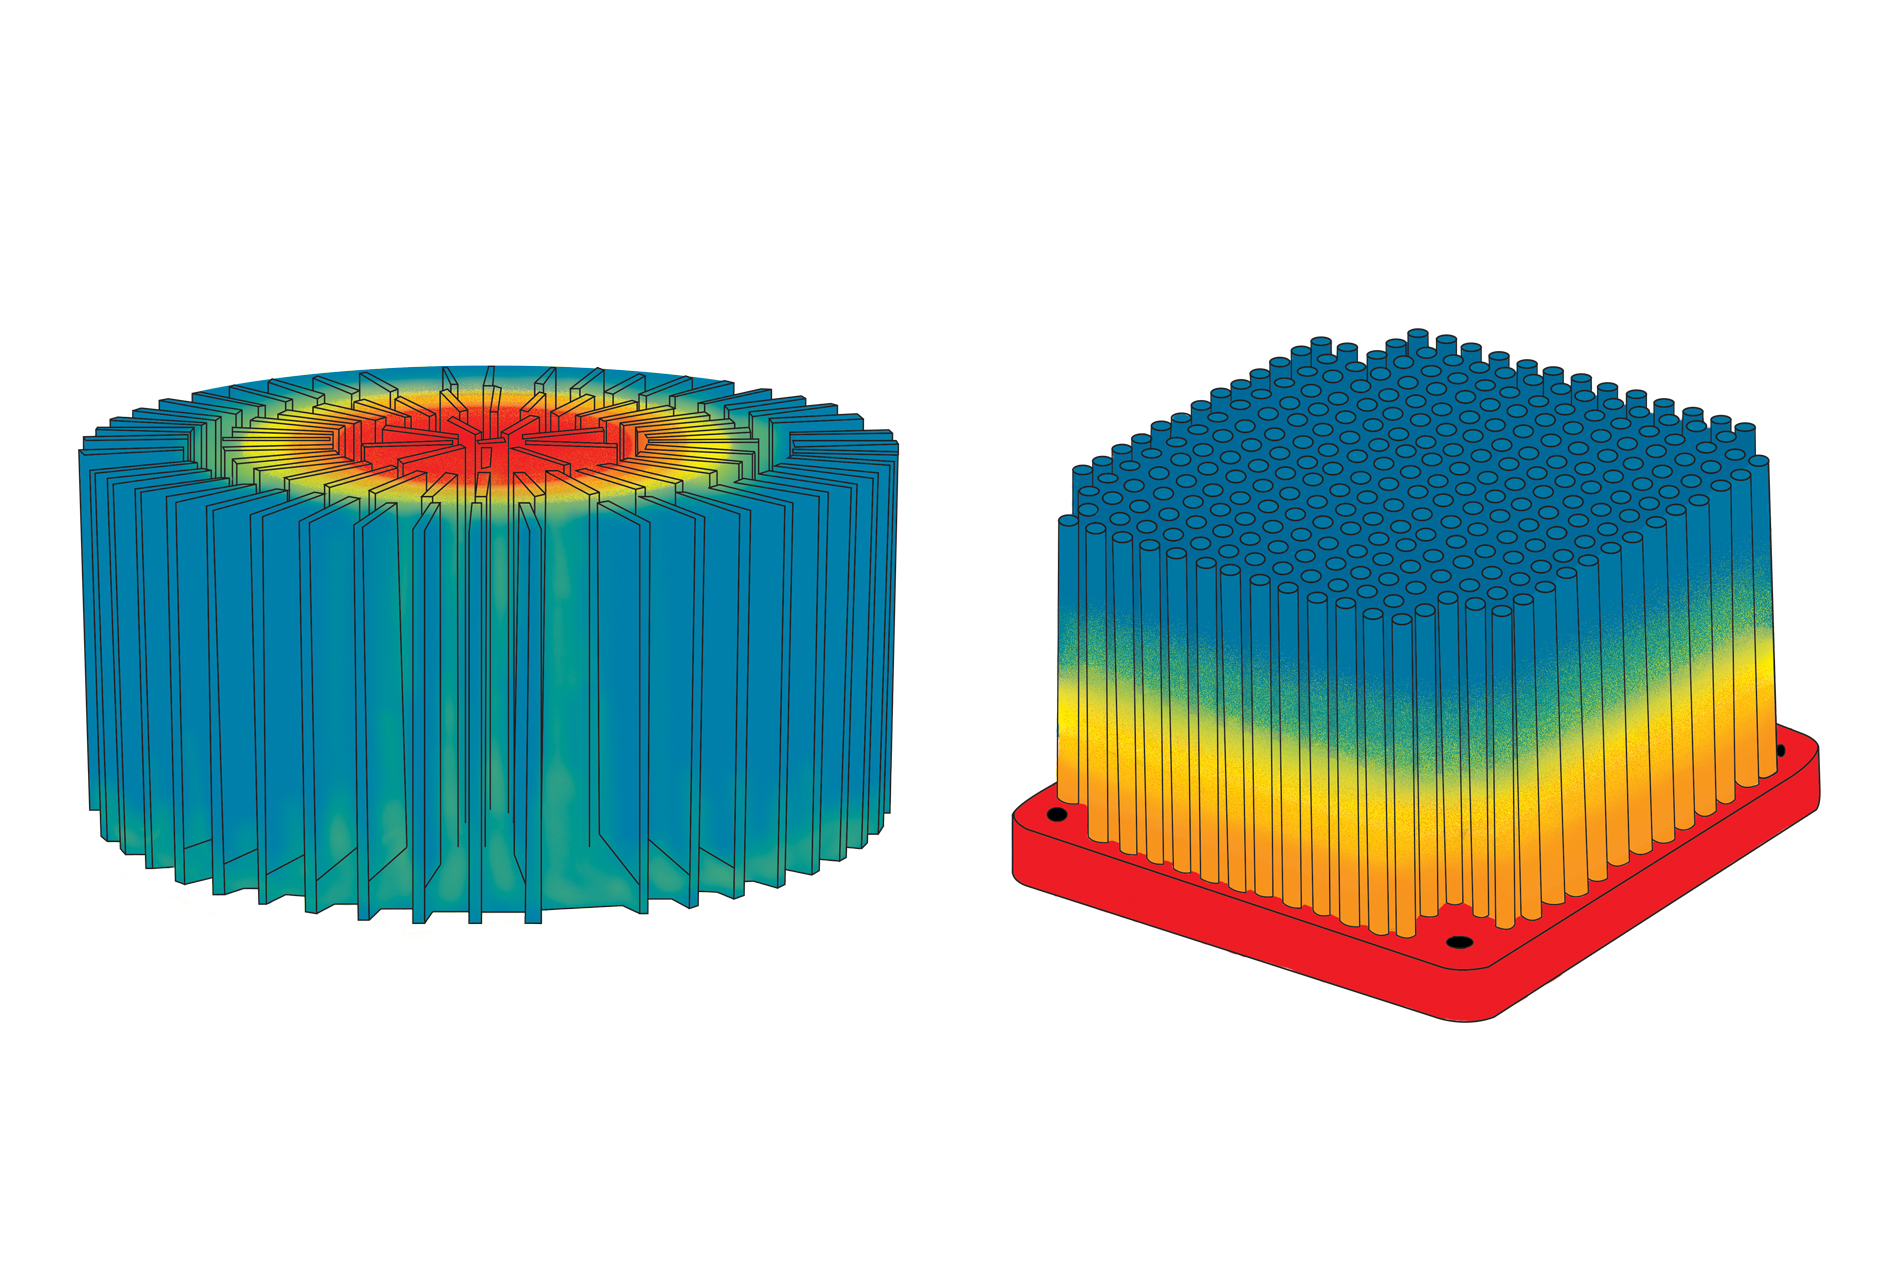 Keeping It Cool With Innovative Heat Sink Designs